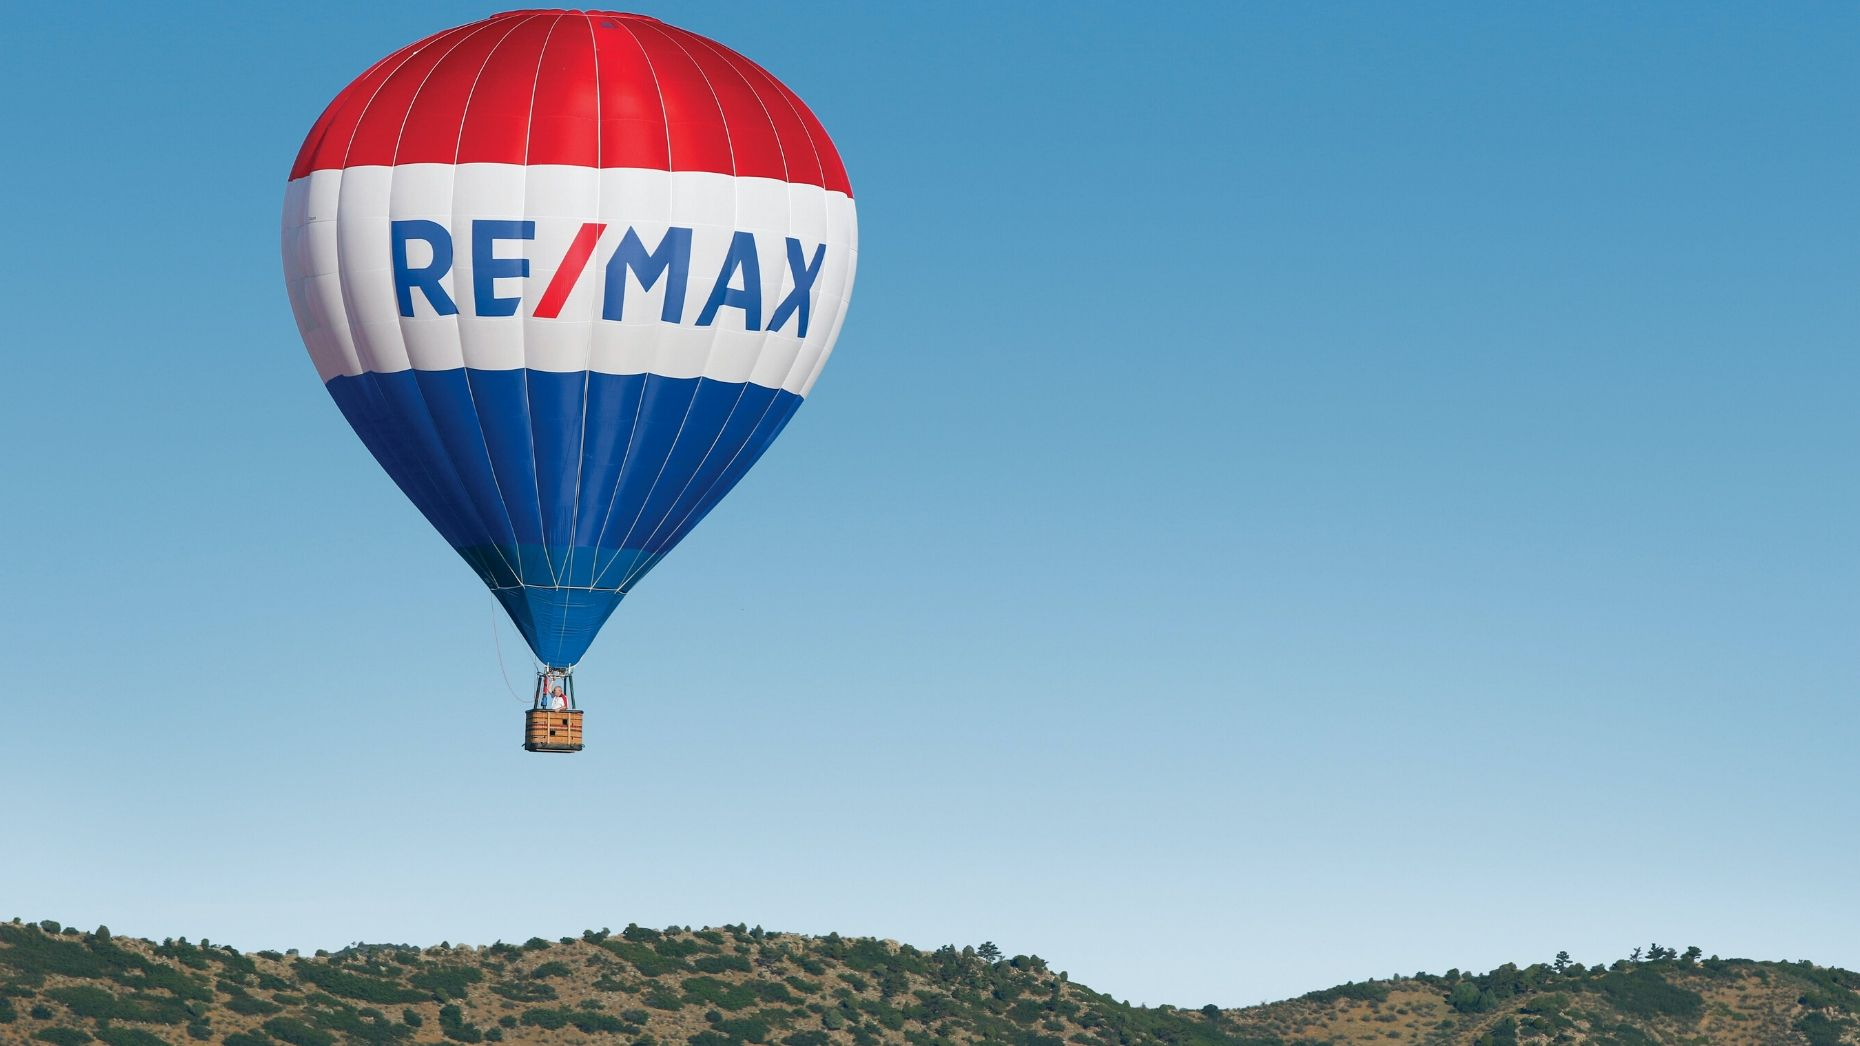 Fees, acquisitions and Motto: 3 takeaways from RE/MAX's earnings